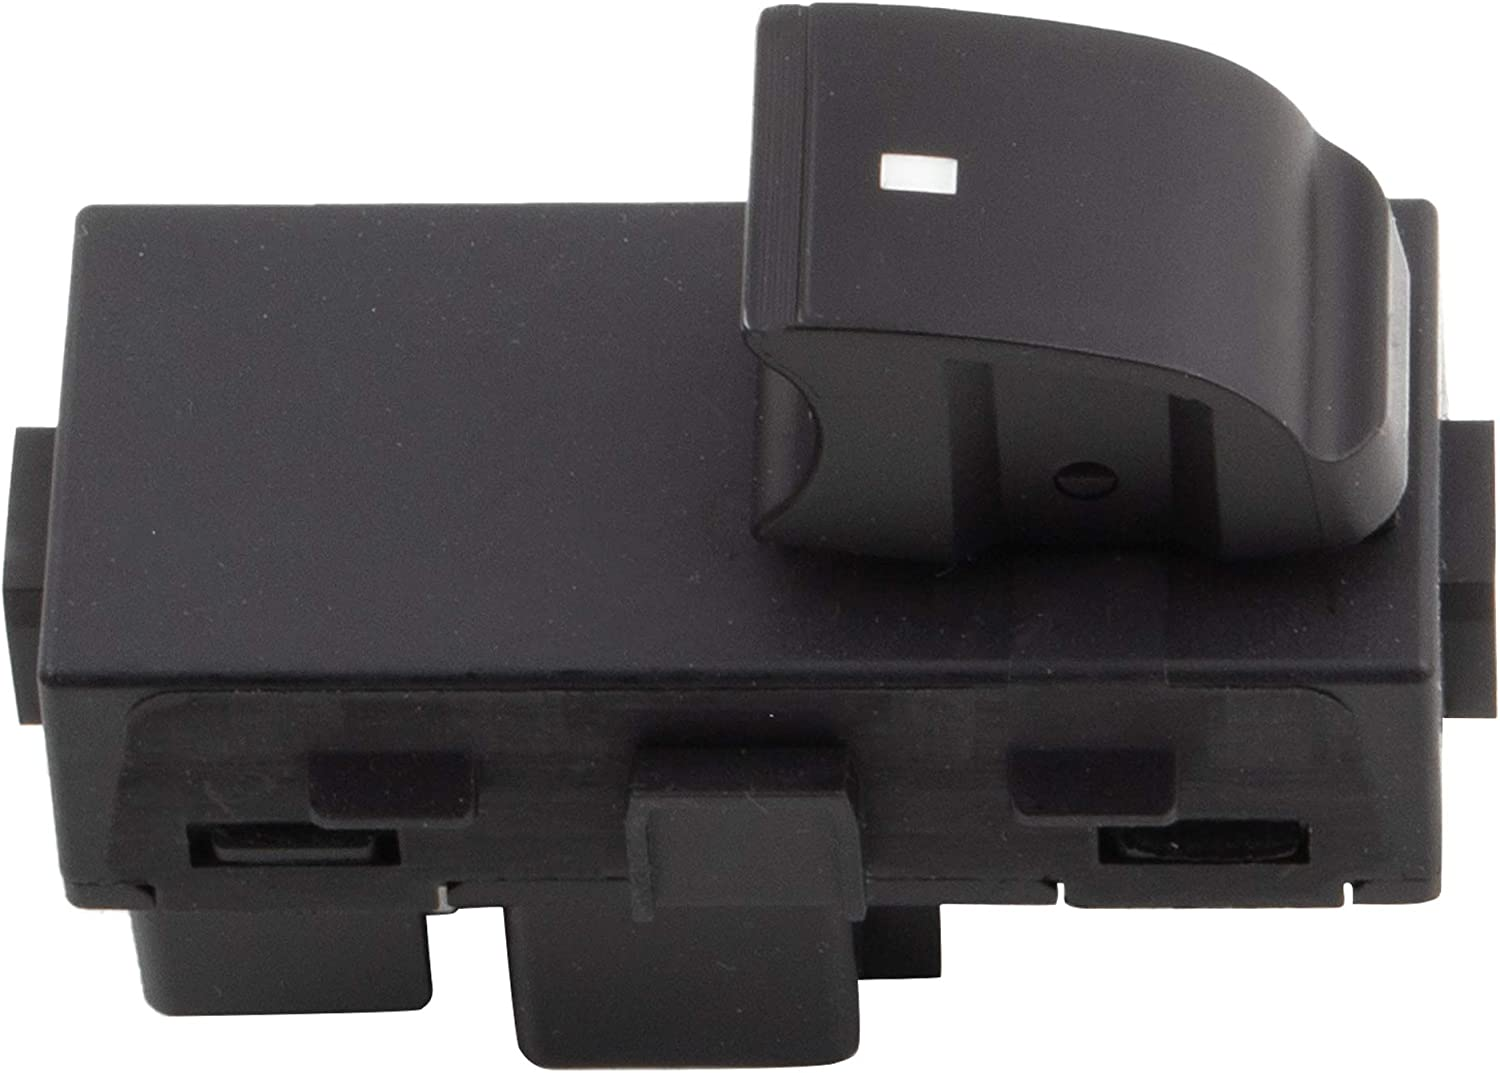 BOXI Power Window Switch Passenger Front Right//Rear Left or Right for Select 2006-2015 Chevy Avalanche Cheyenne HHR Silverado Suburban Tahoe Traverse GMC Acadia Sierra Yukon Replace 22895545 901-149